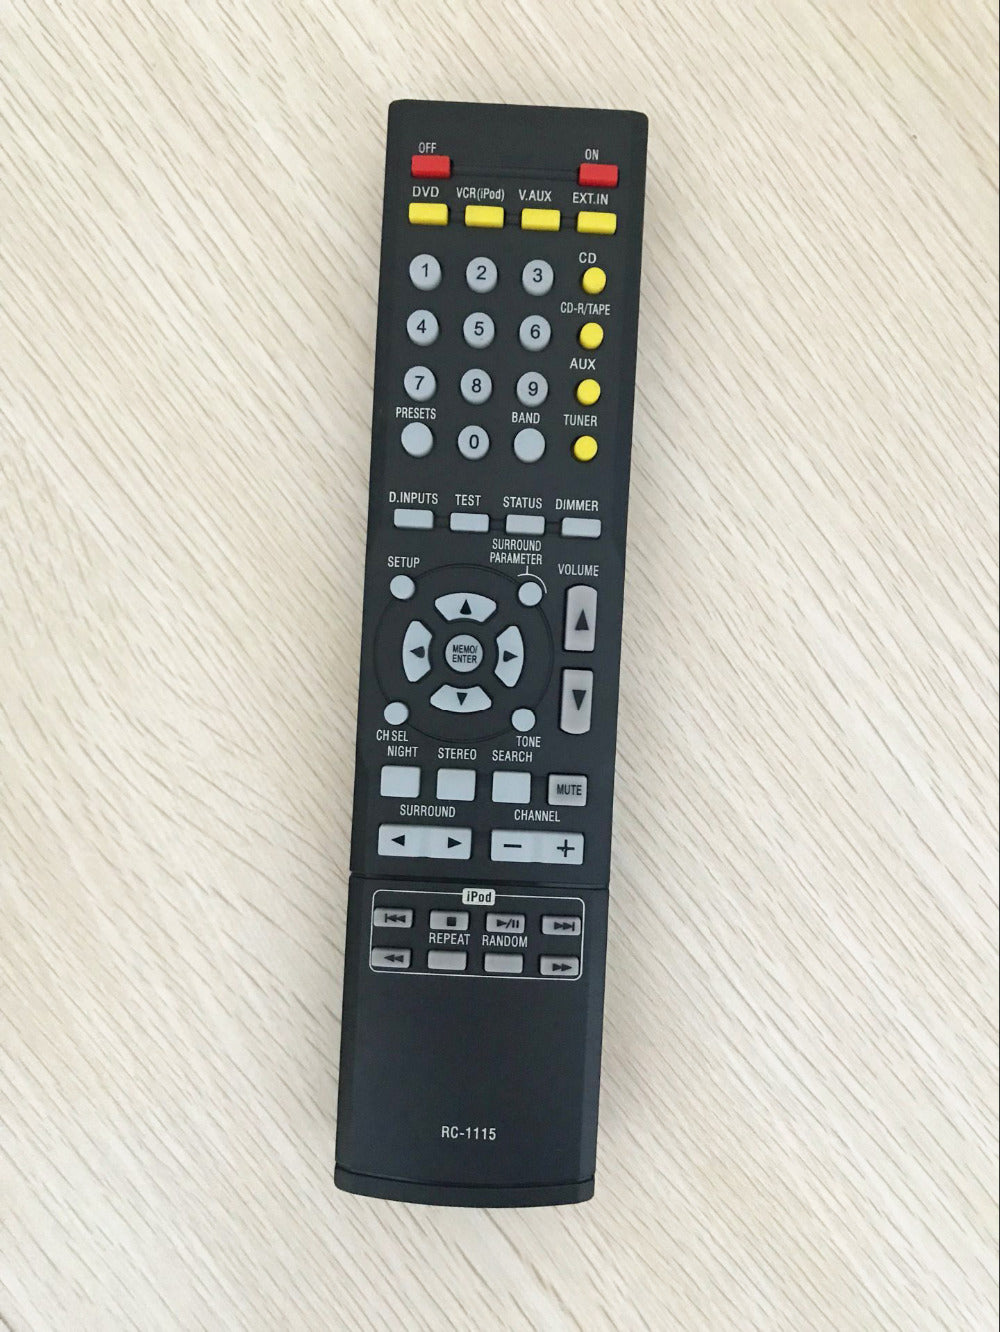 Costbuys  RC-1115 Replacement Remote Control for Denon AVR-1312 AVR-1612 AVR-1311 AVR-391 AVR-390 AV System Home Theater Receive